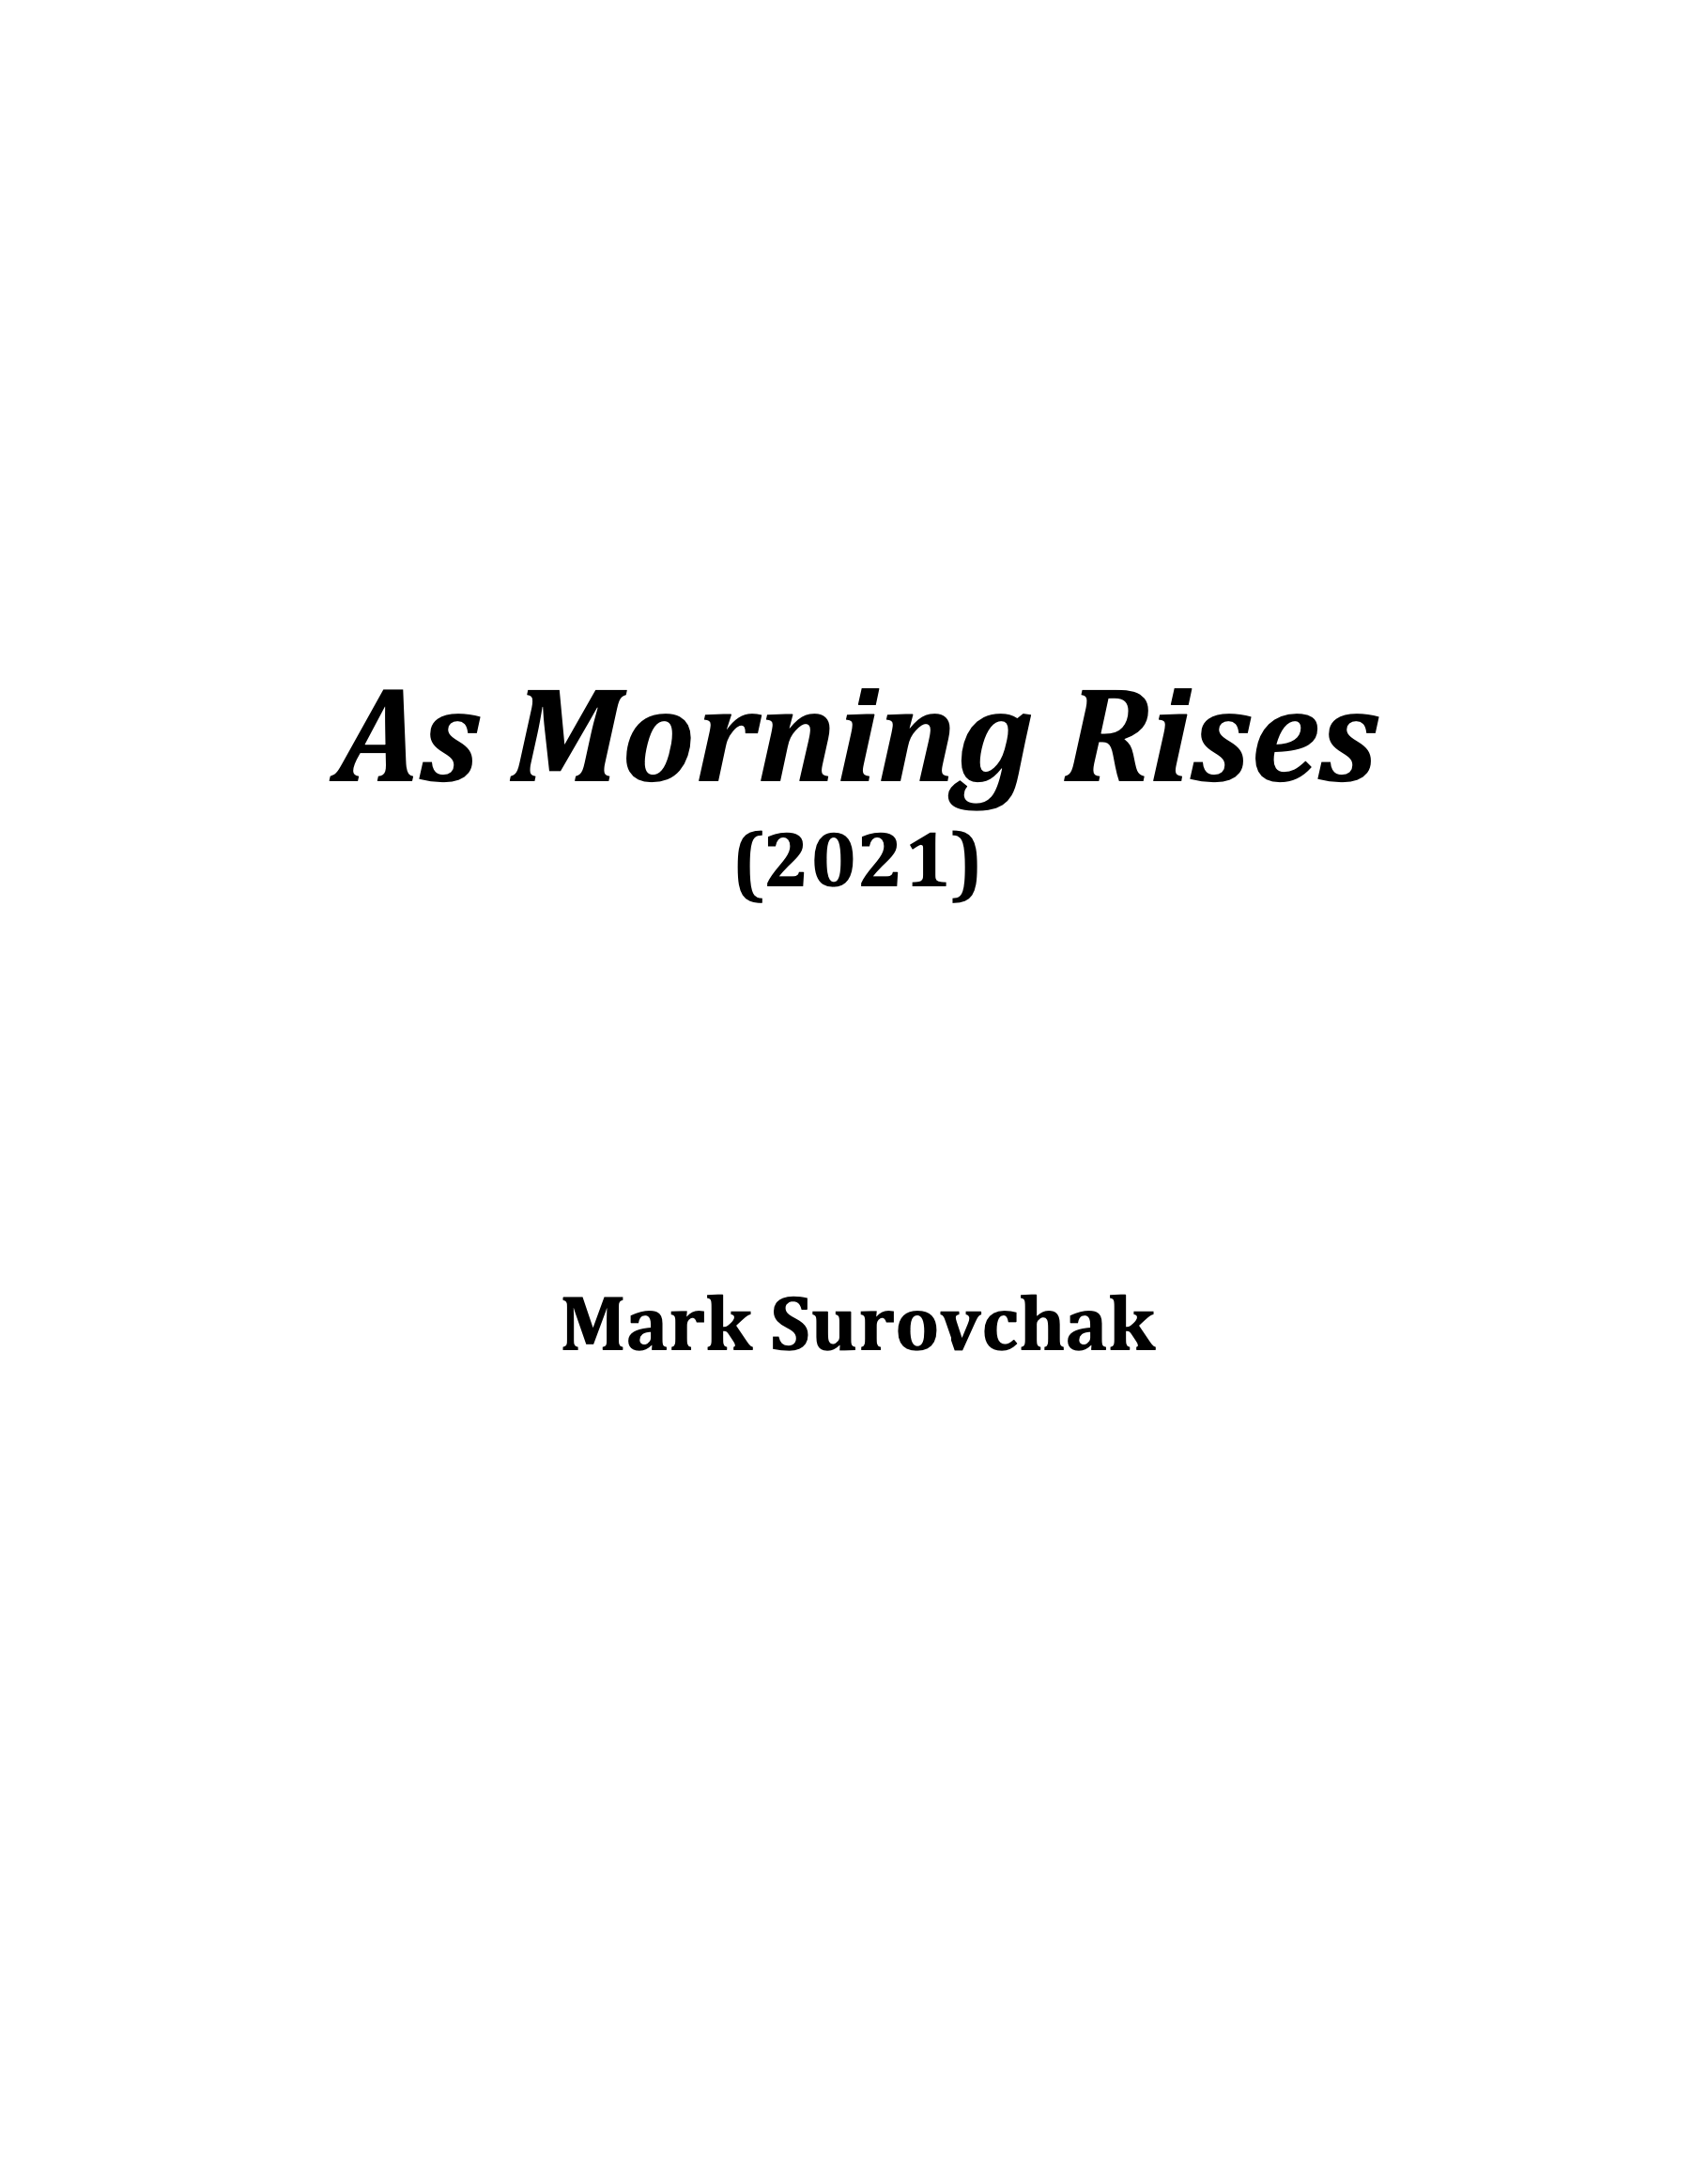 As Morning Rises by Mark Surovchak